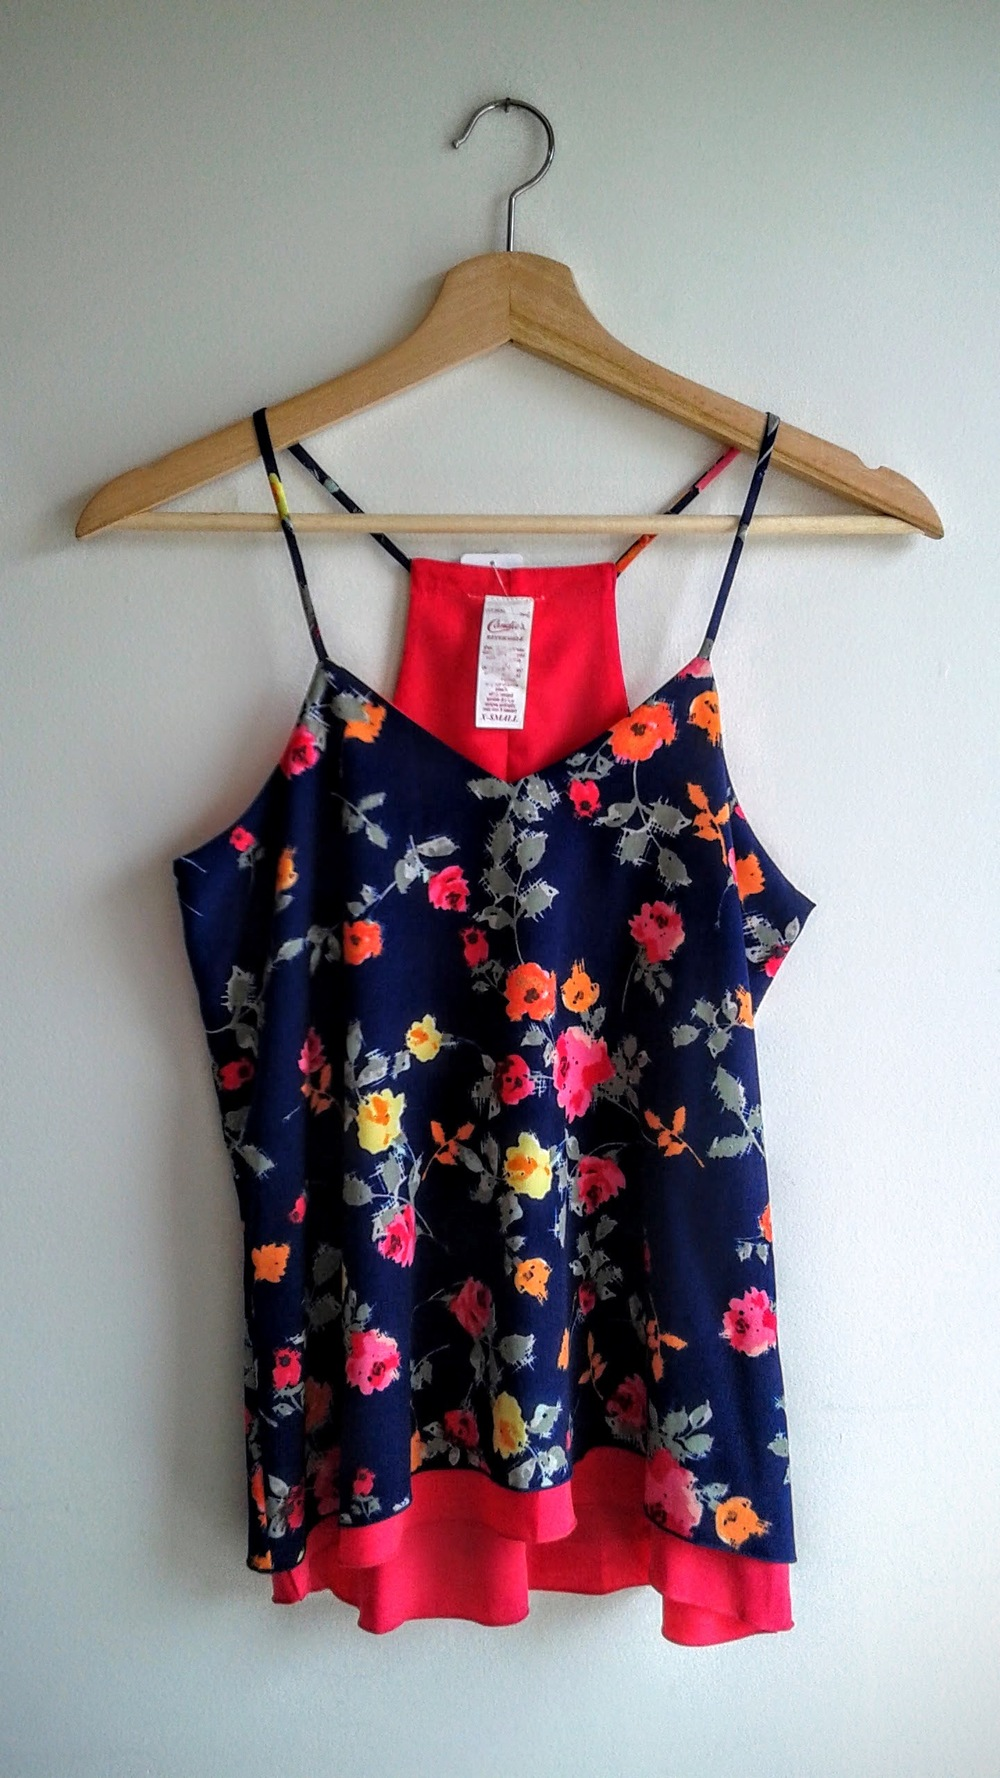 Candies top; Size S, $12